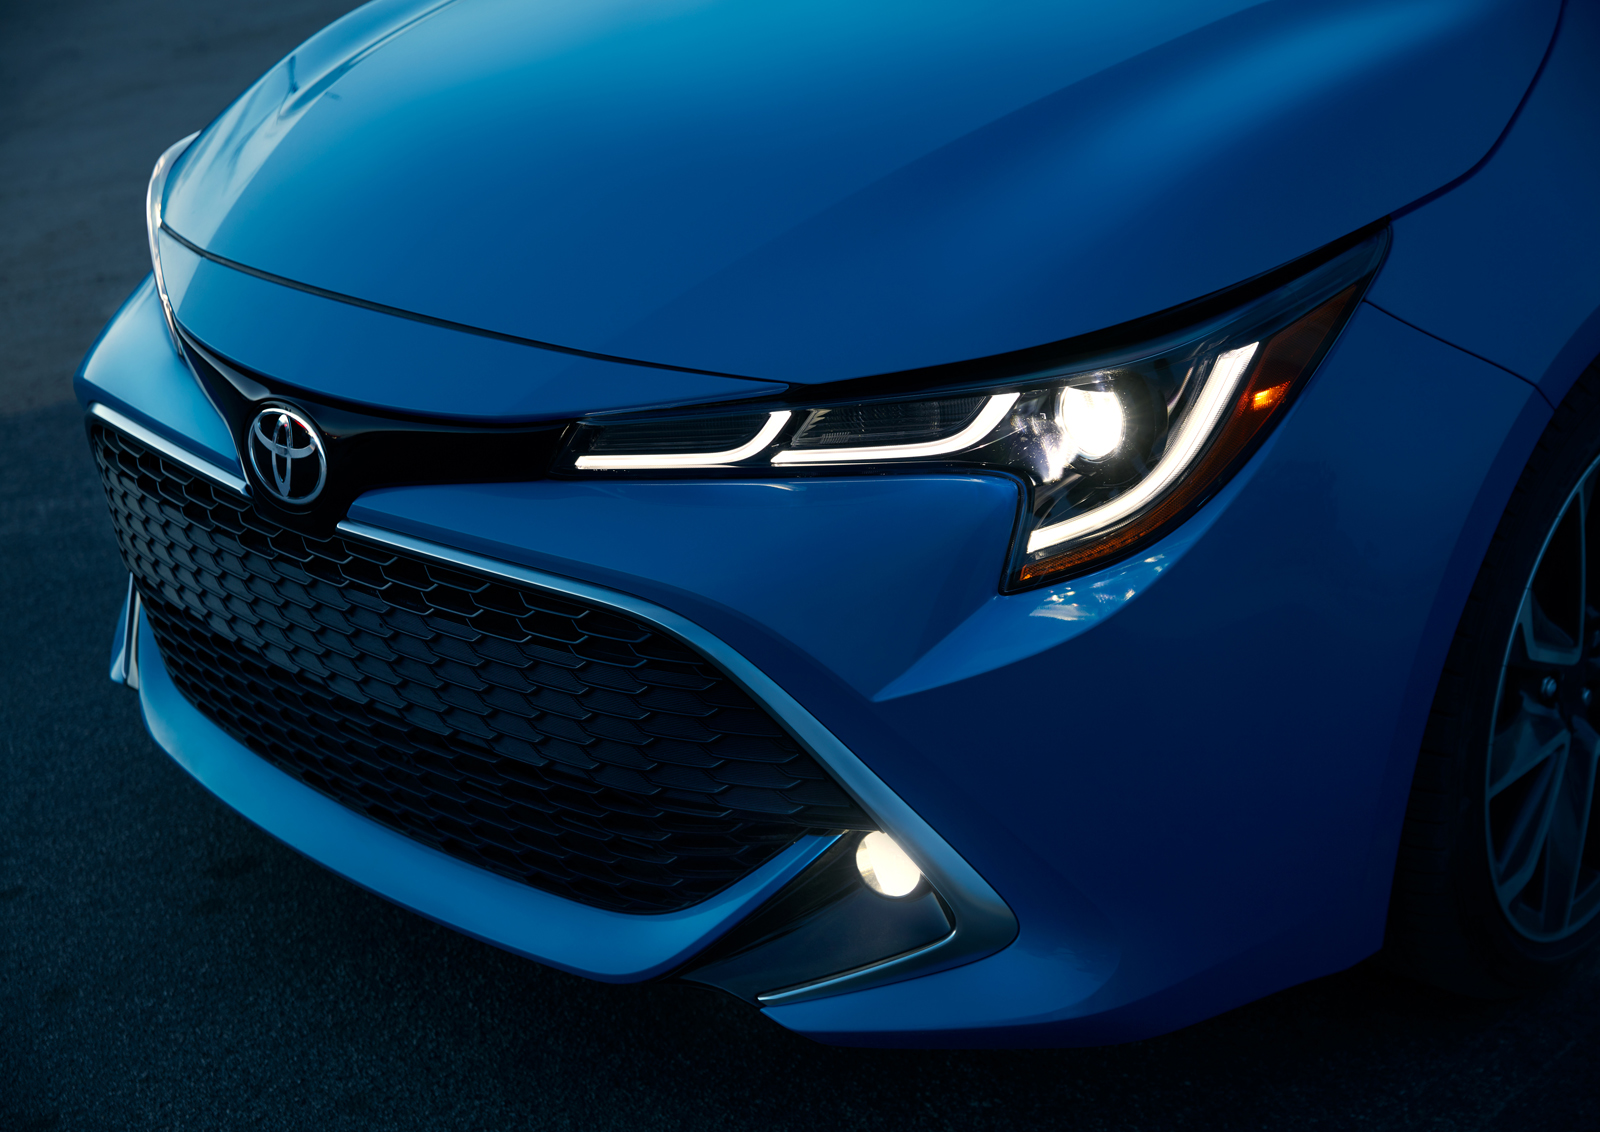 2019 Toyota Corolla Price To Start At 20 910 For Six Speed Manual